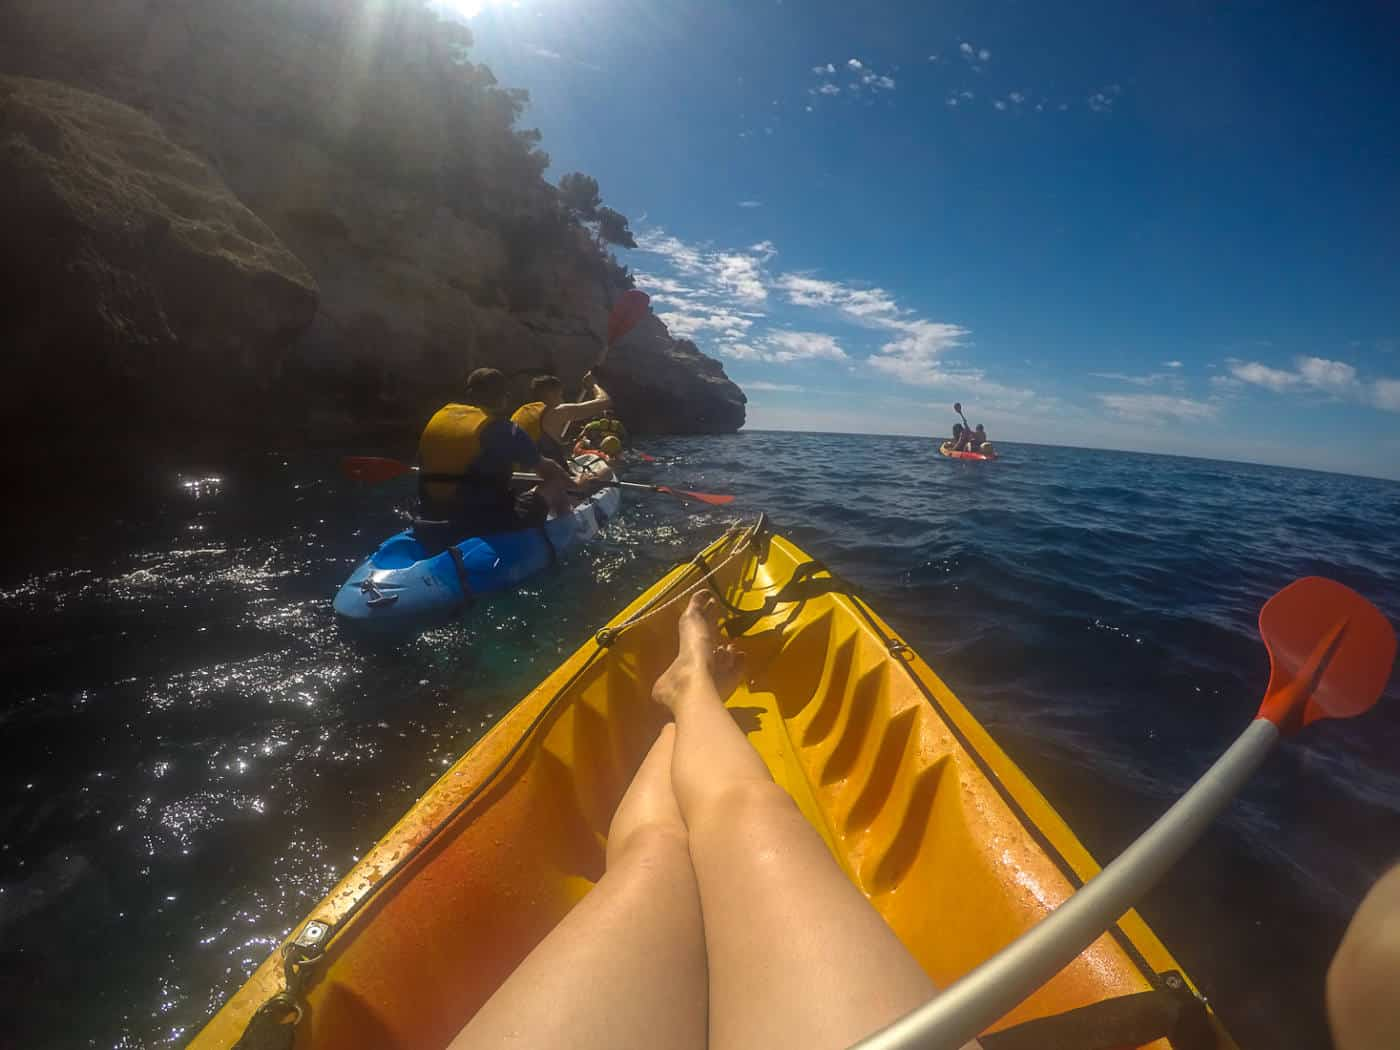 Kayaking in Cala Galdana